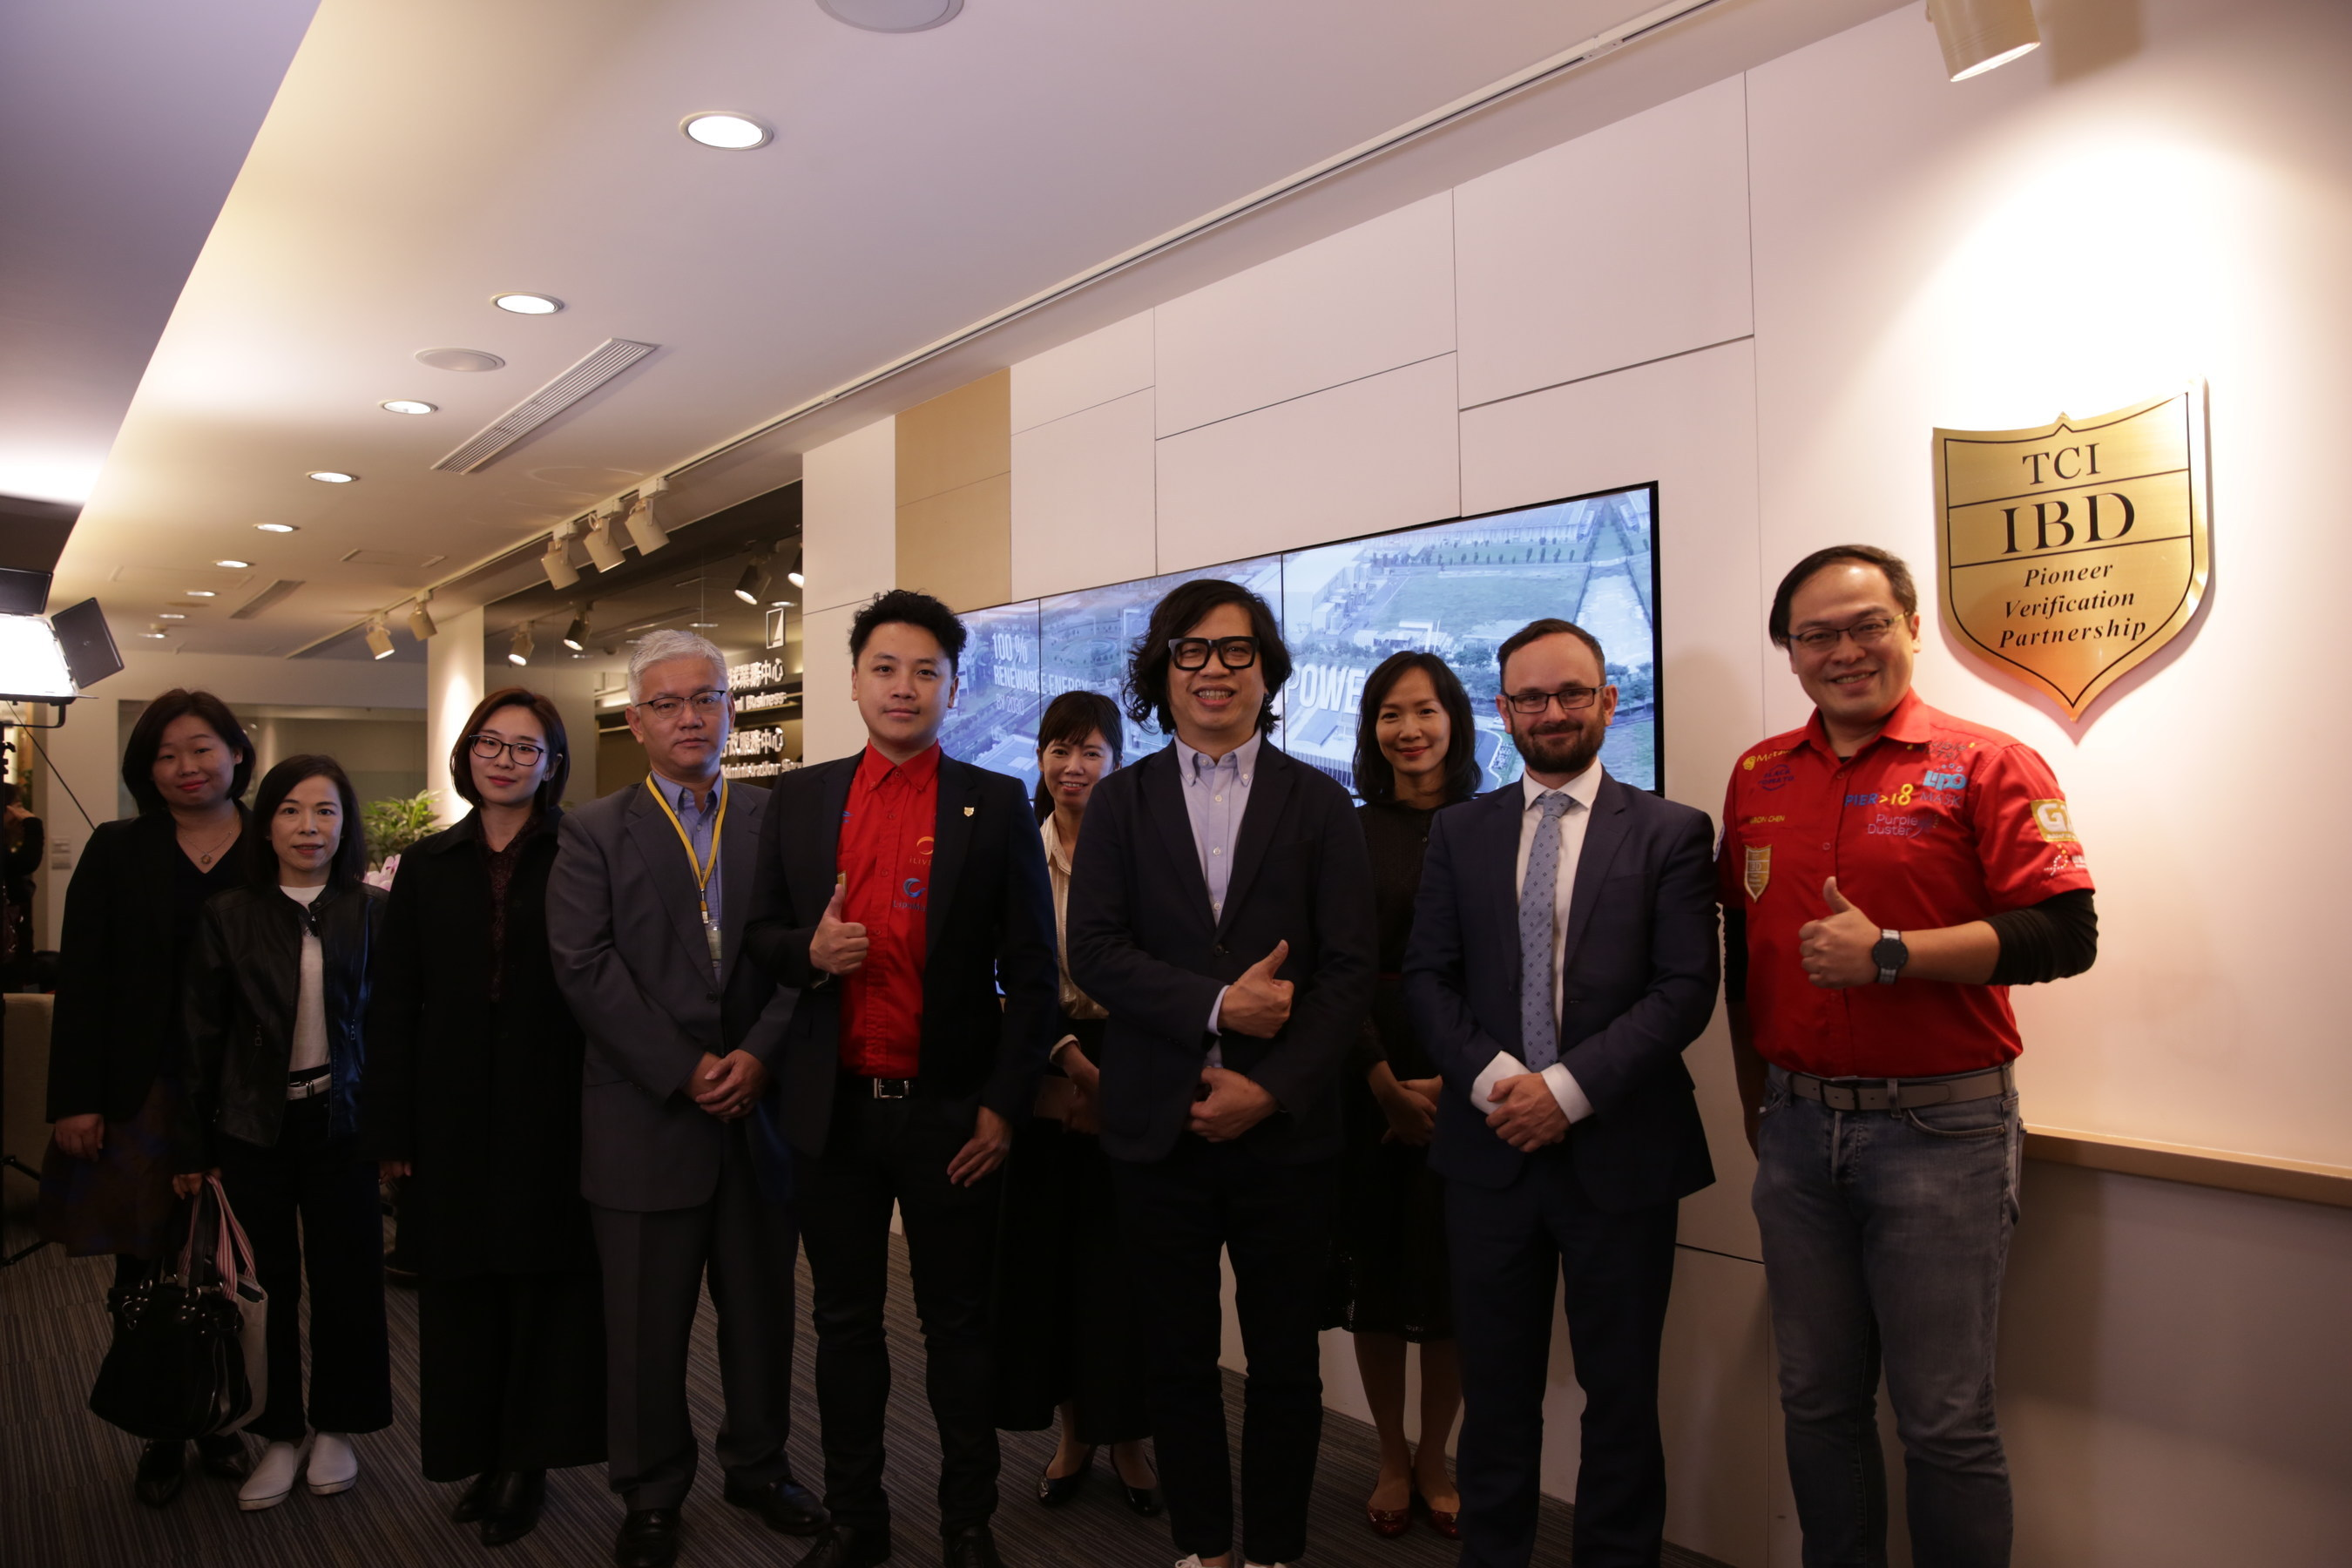 TCI called for greater cooperation between energy producers and purchasers, to create an alliance of companies working together for Taiwan's renewable development.